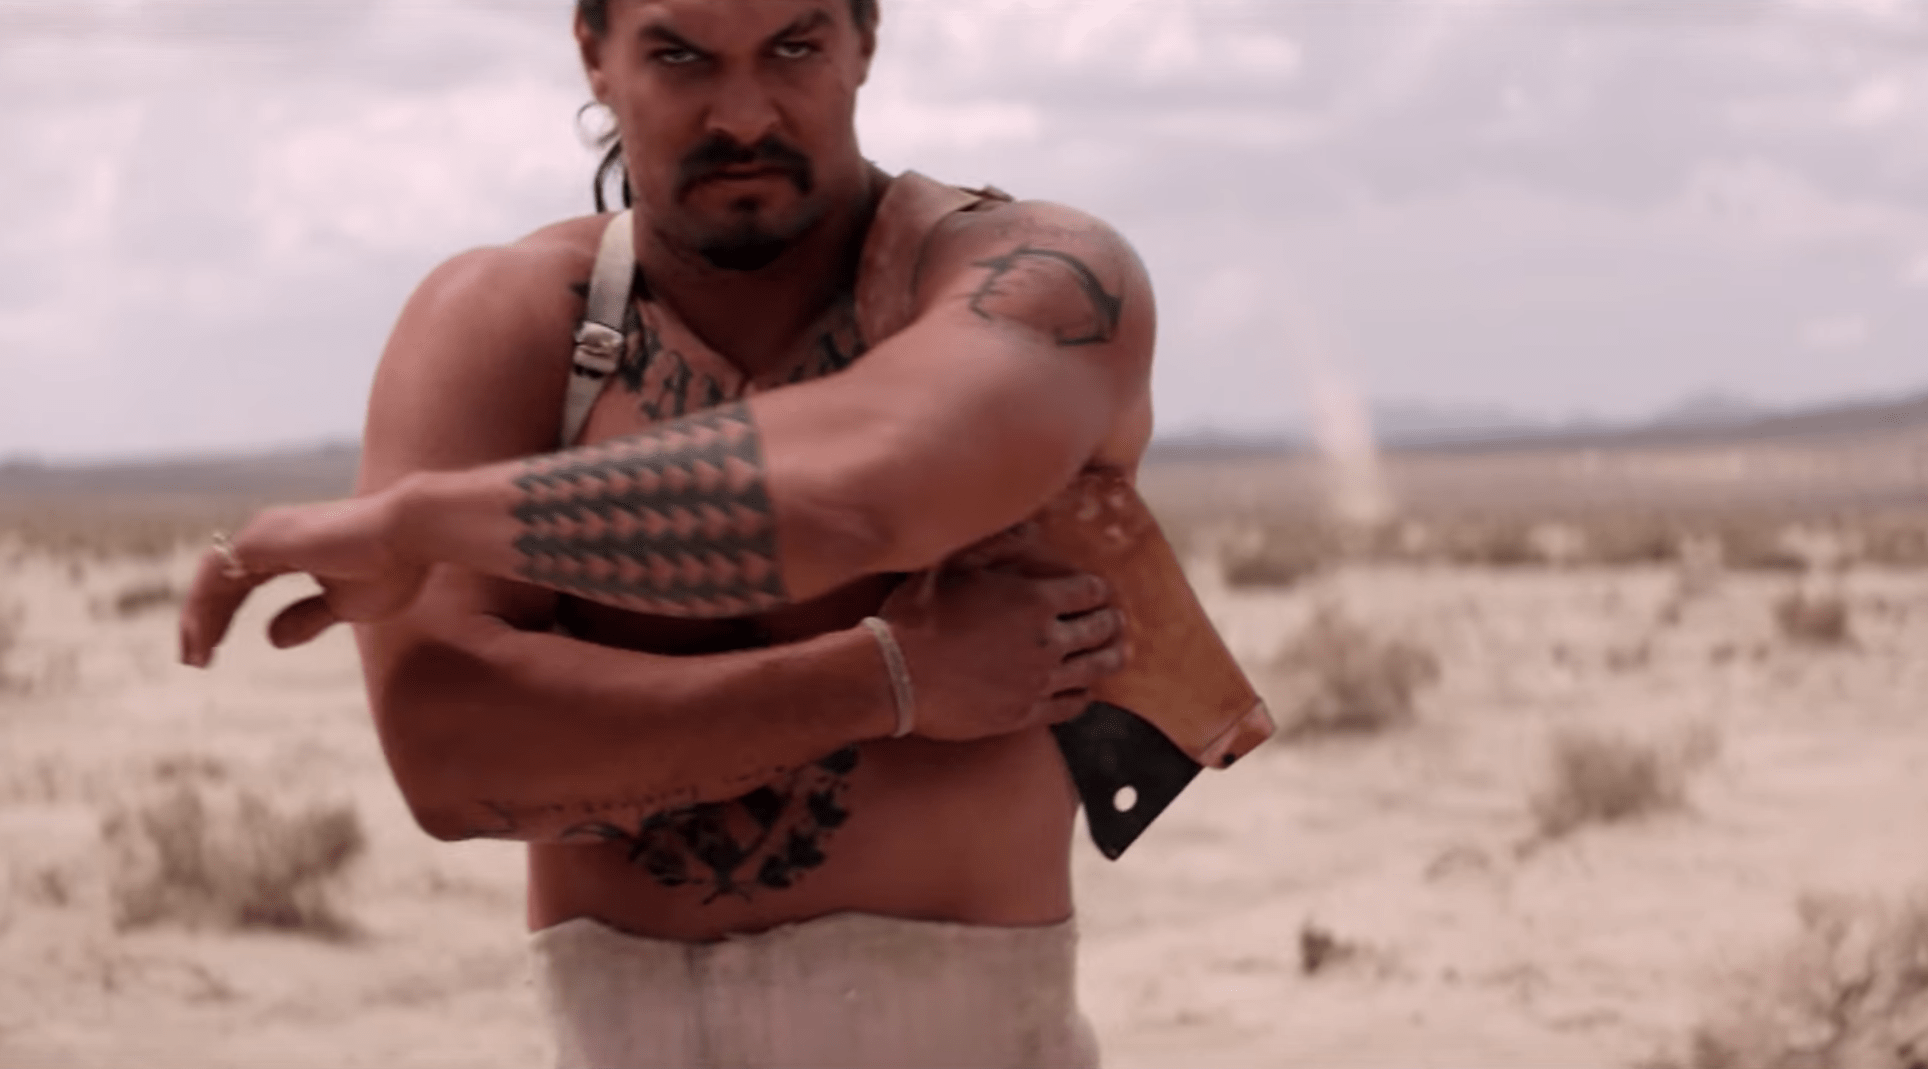 Premier trailer pour The Bad Batch avec Jason Momoa, Jim Carrey et Keanu Reeves